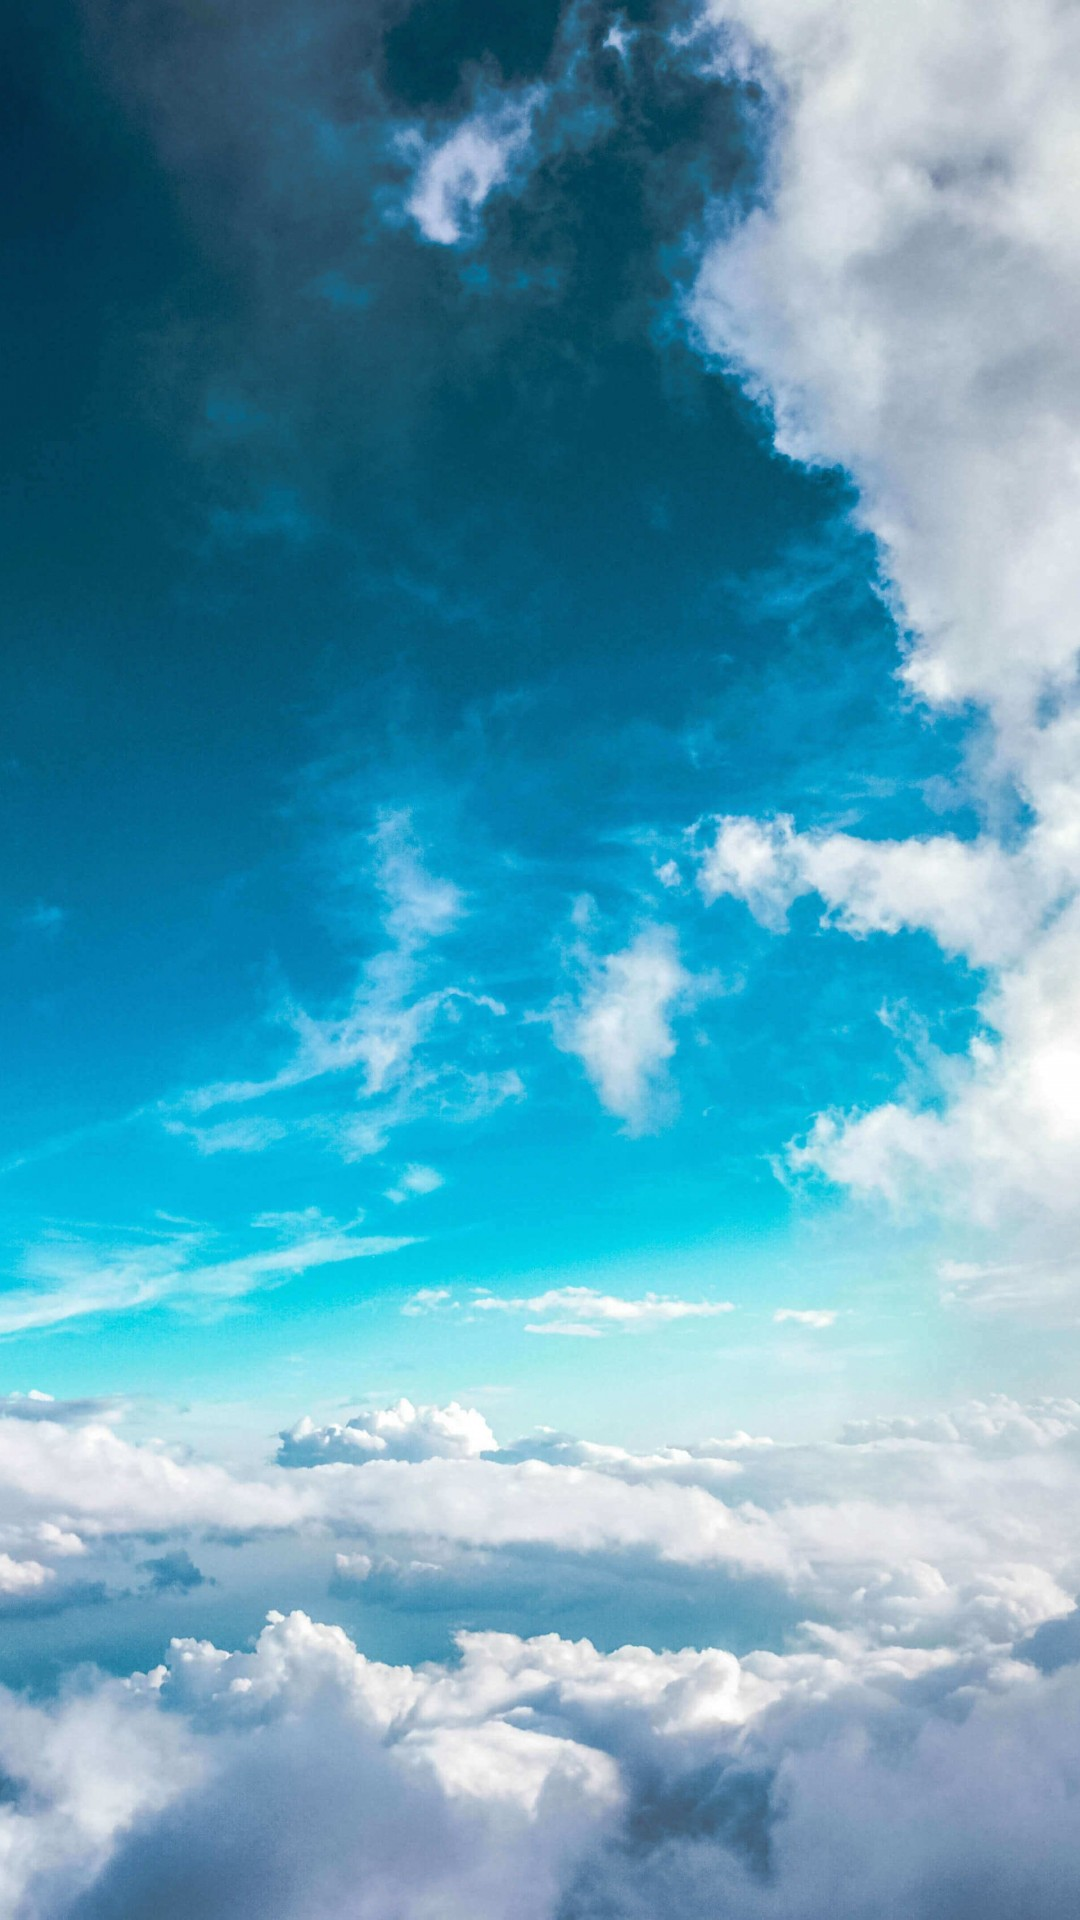 Cloudy Blue Sky Wallpaper for SAMSUNG Galaxy S5